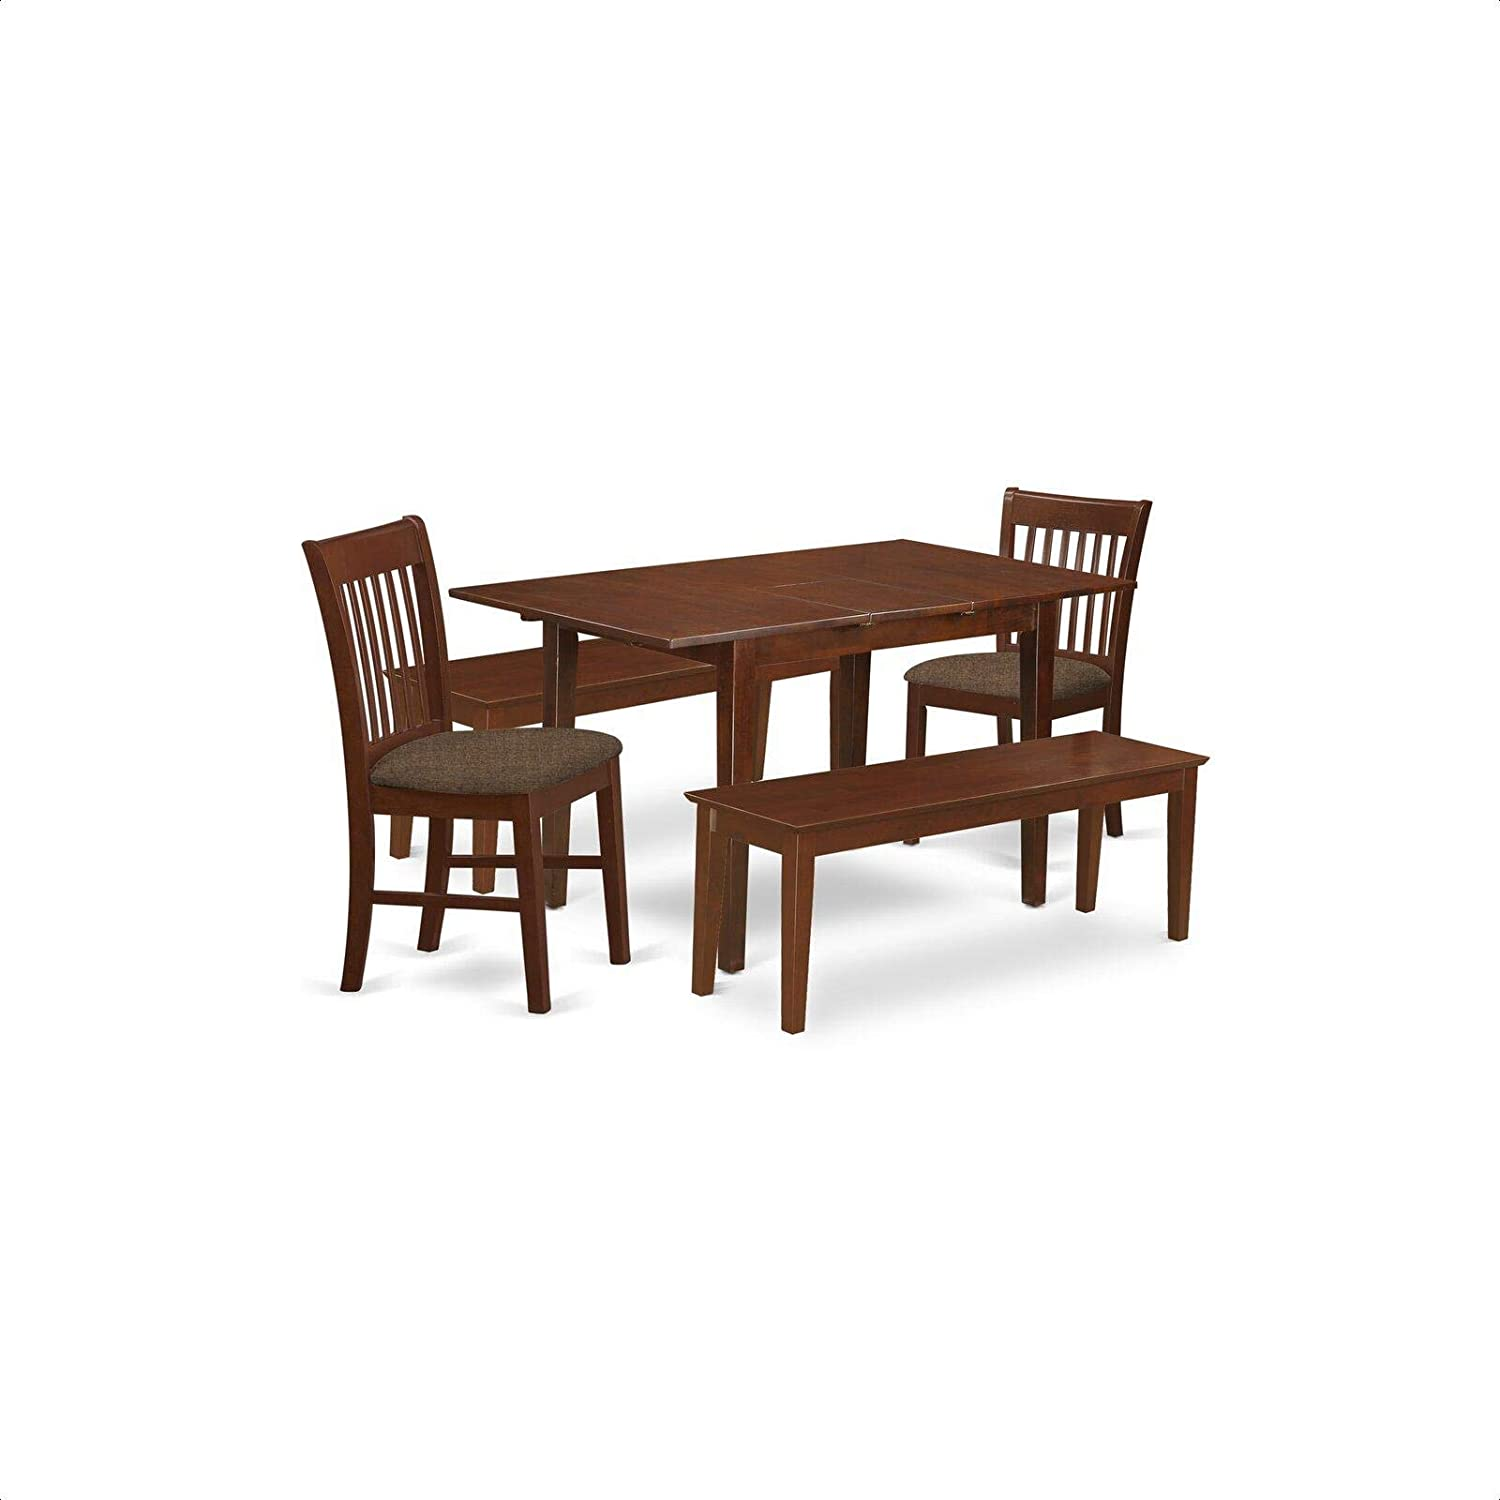 Antonio 5 Piece Extendable Solid Wood Breakfast Nook Dining Set Table Chair Sets